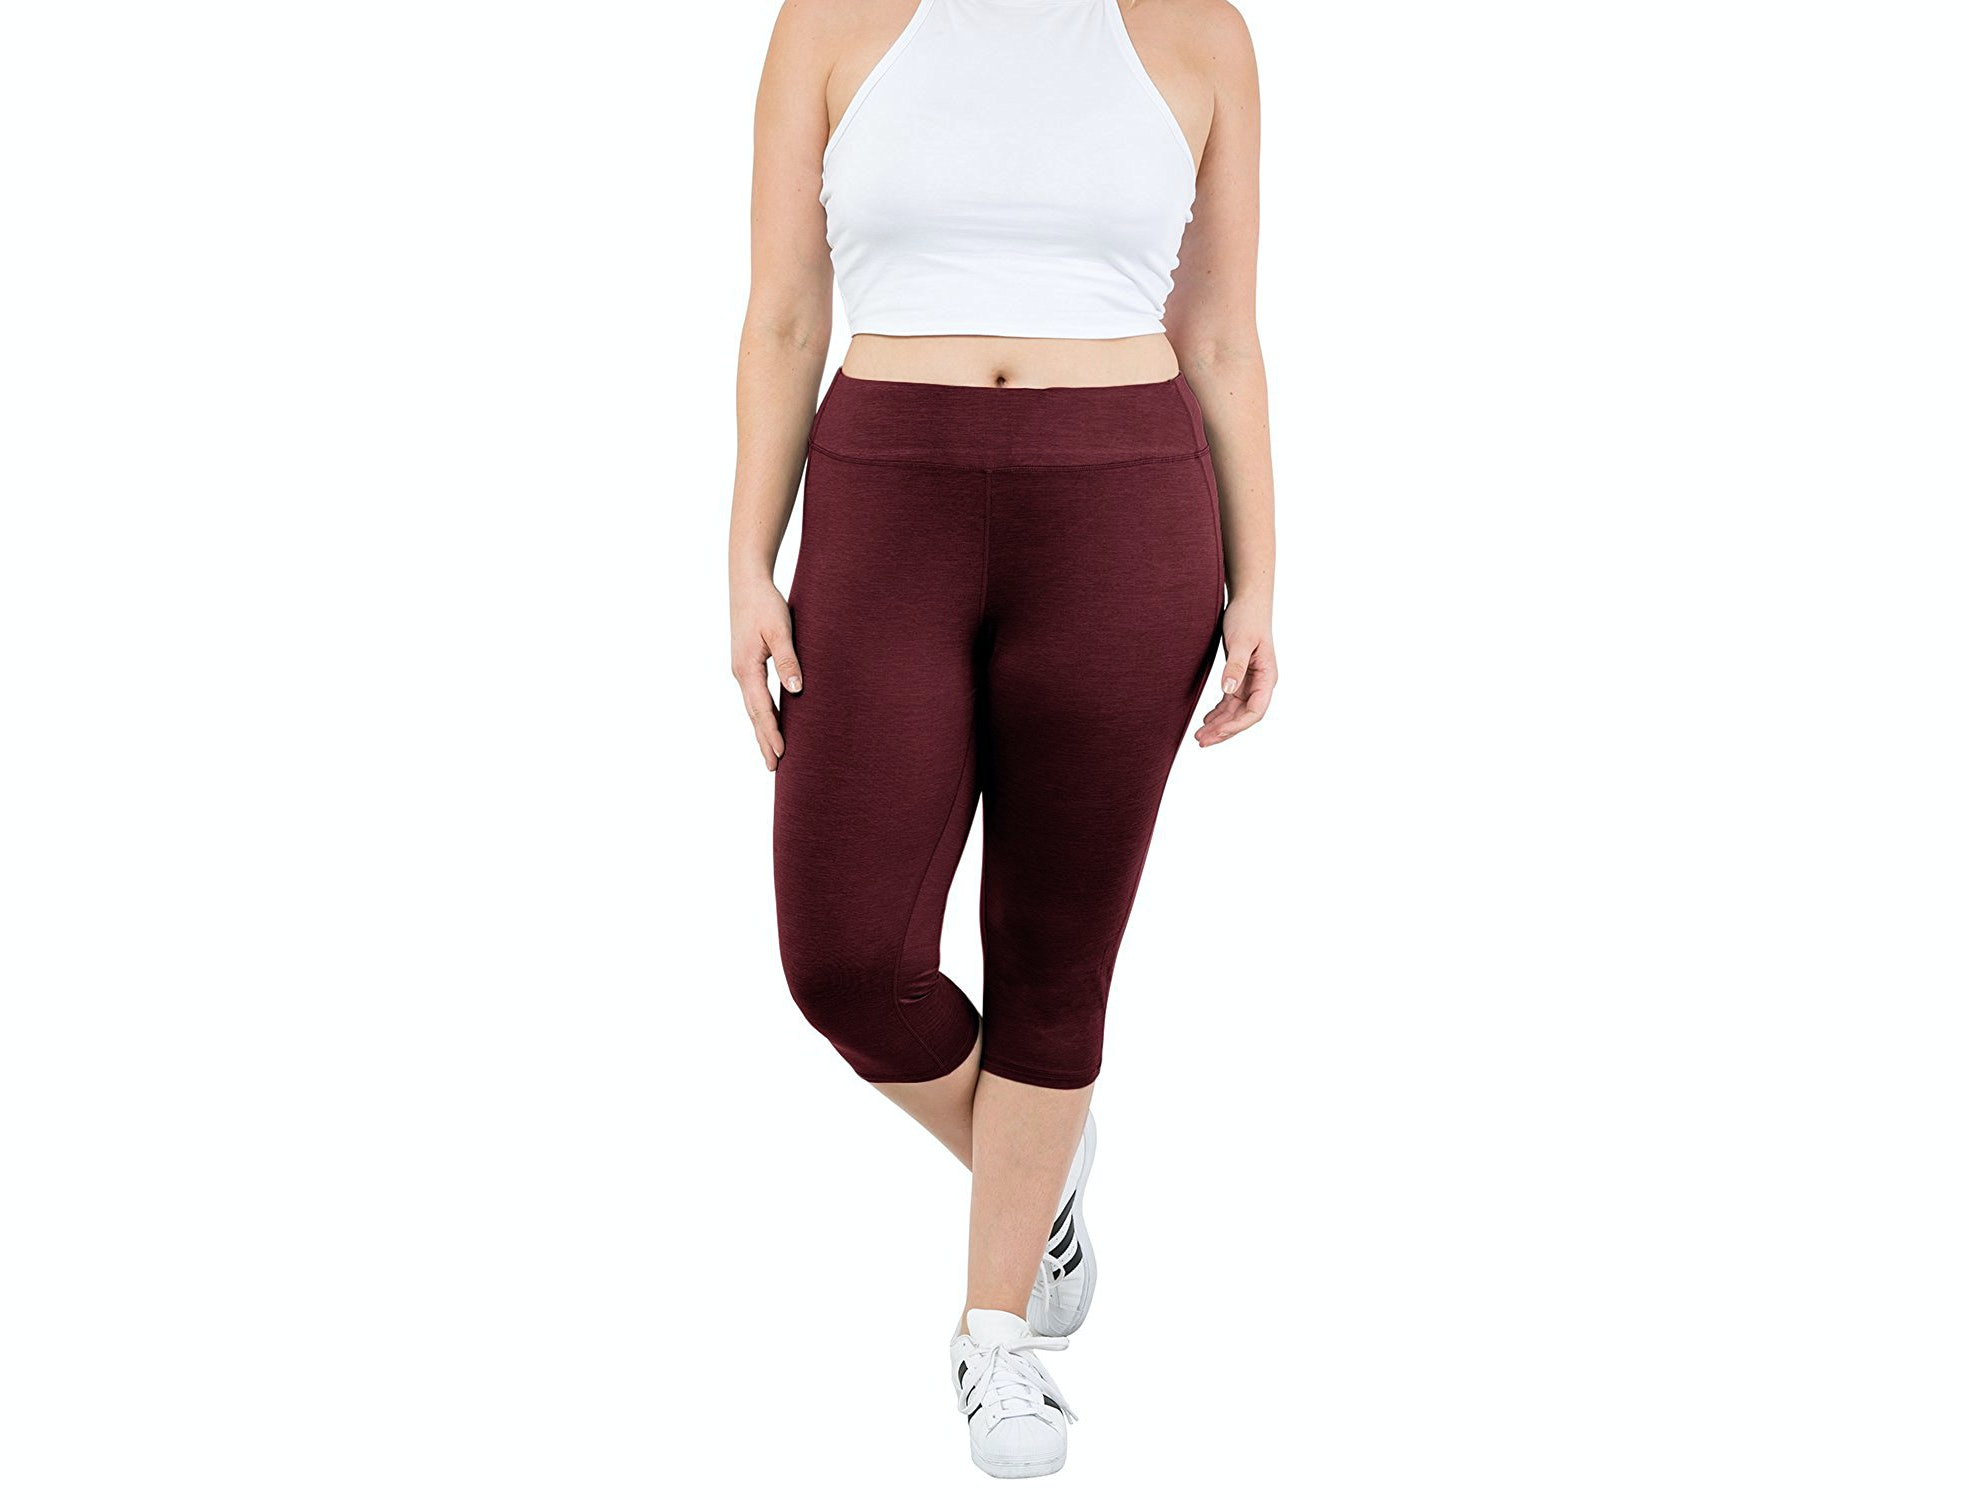 81f57479f2953b The 8 Best Workout Leggings